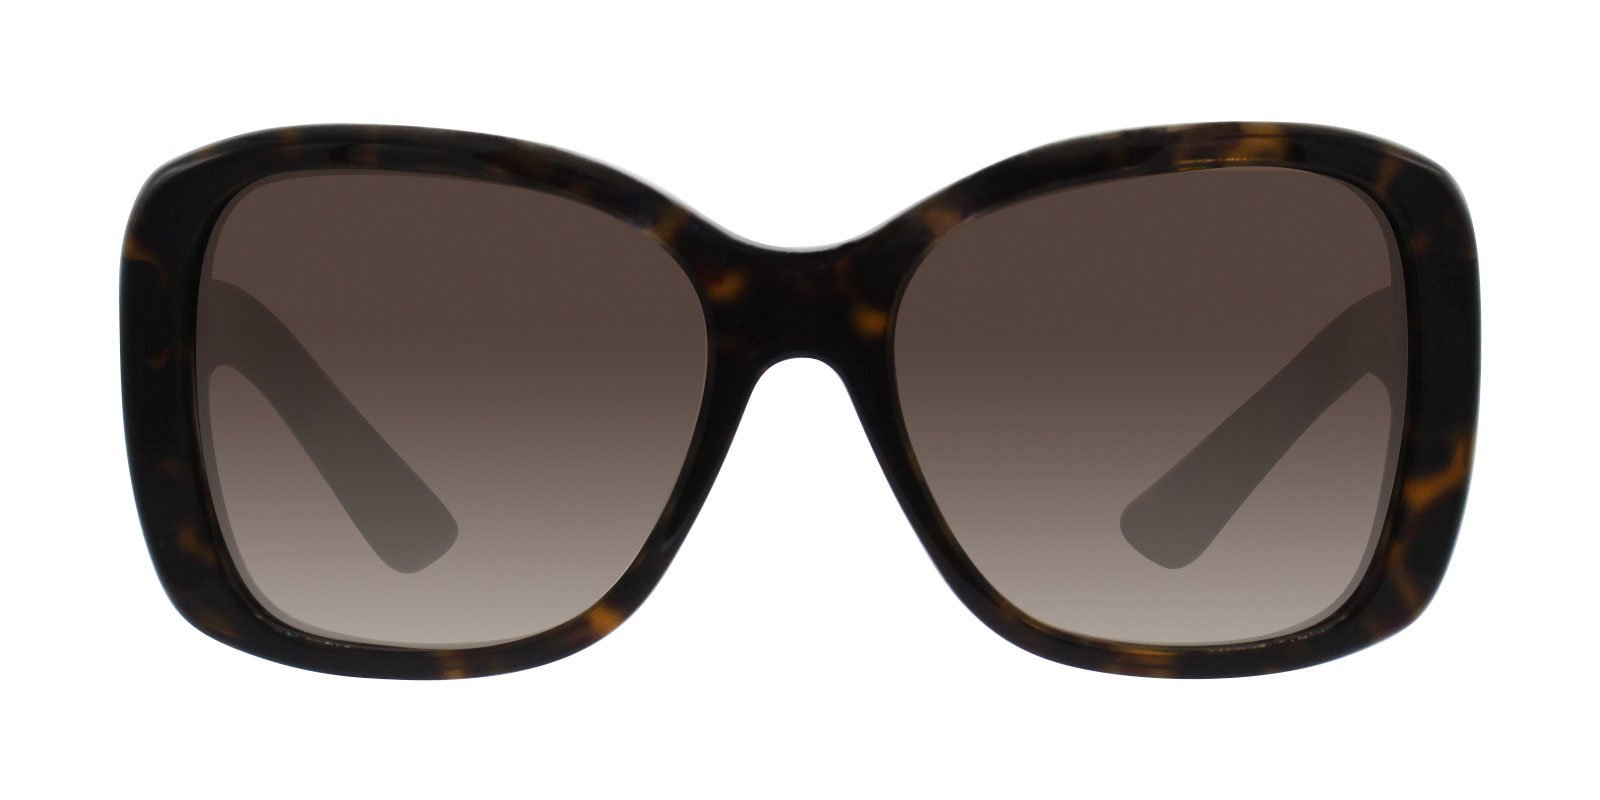 Prada - PR32PS Tortoise/Brown Gradient Rectangular Women Sunglasses - 57mm-Sunglasses-Designer Eyes